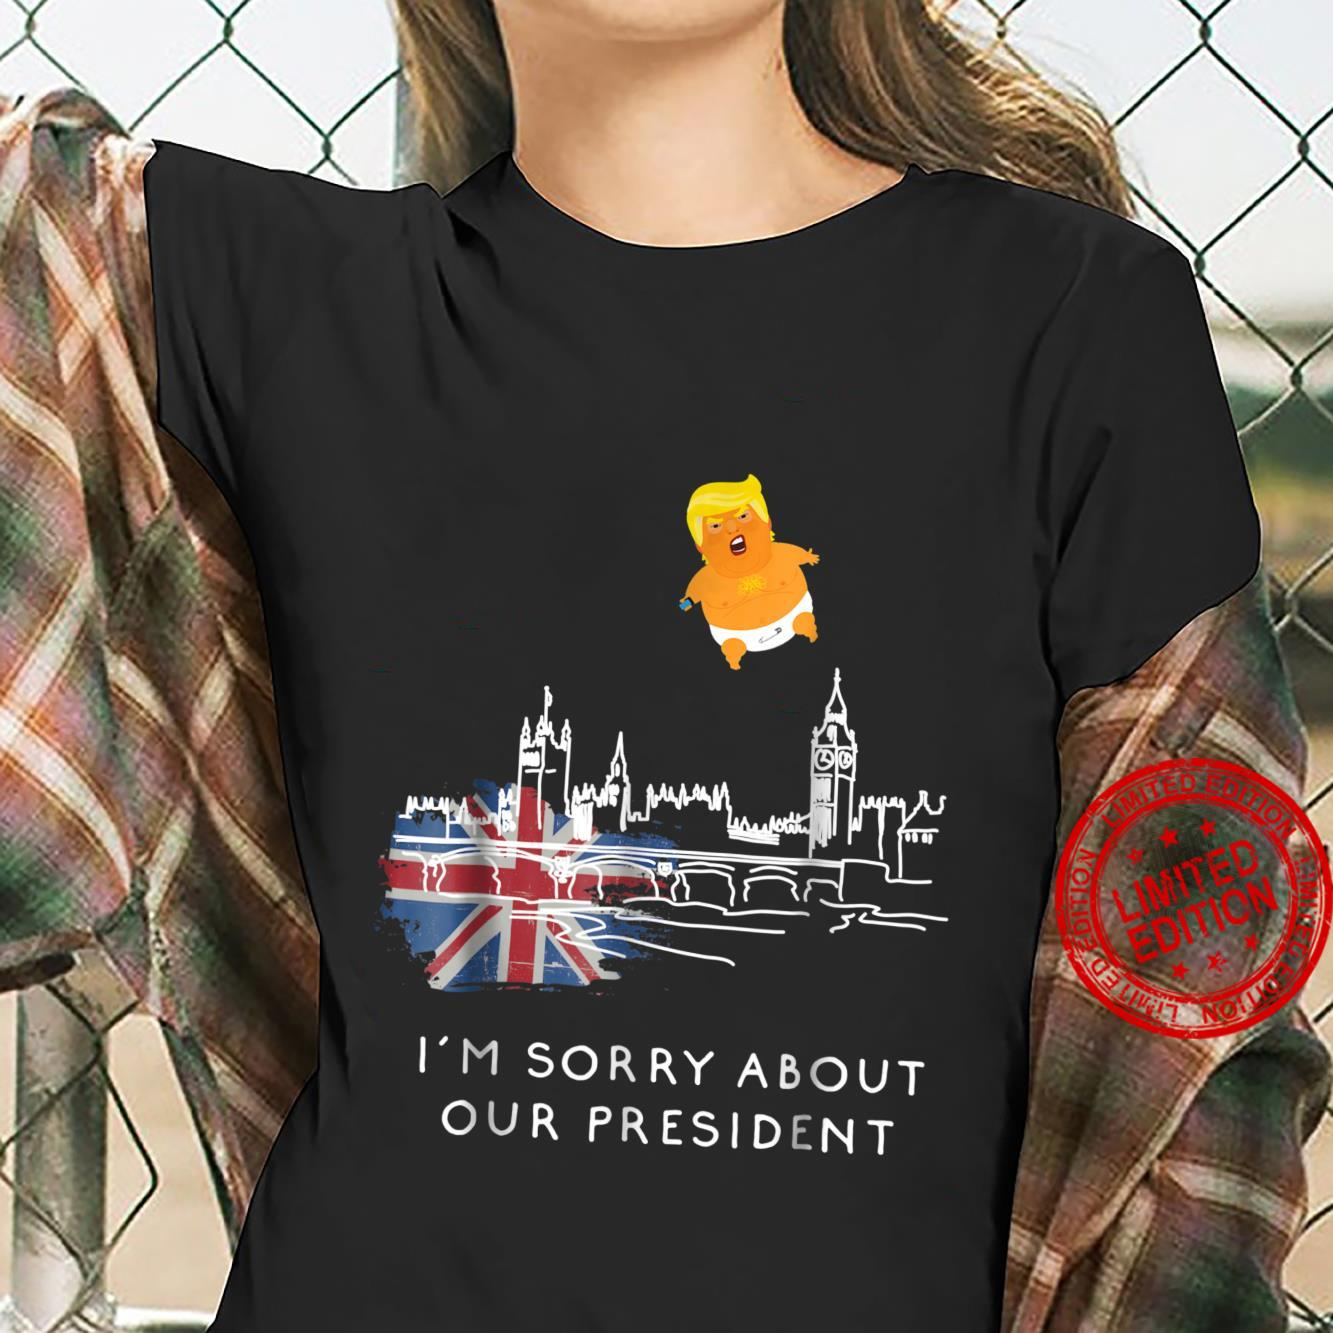 Trump Baby Blimp Float Balloon London Protest I'm Sory ABout Our President Shirt ladies tee